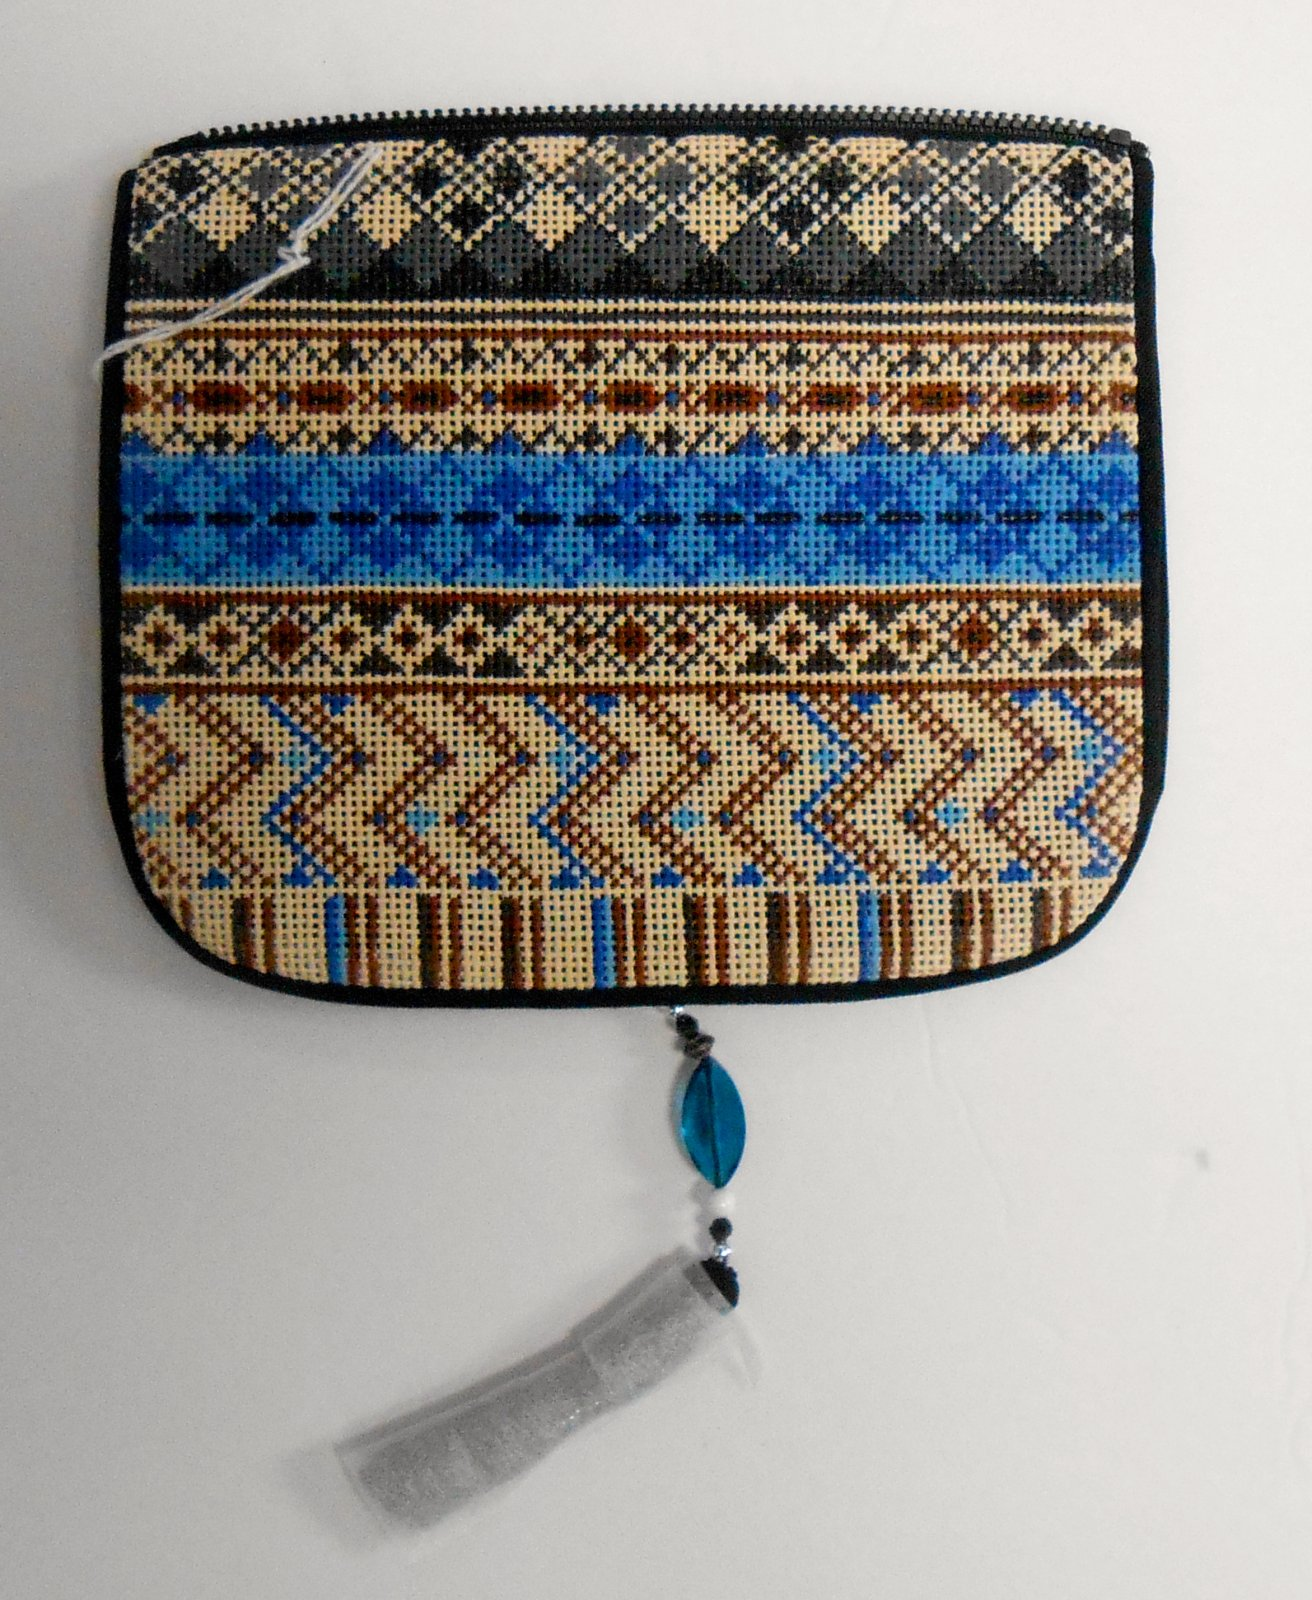 Black, Brown and Blue Geometric Purse Flap